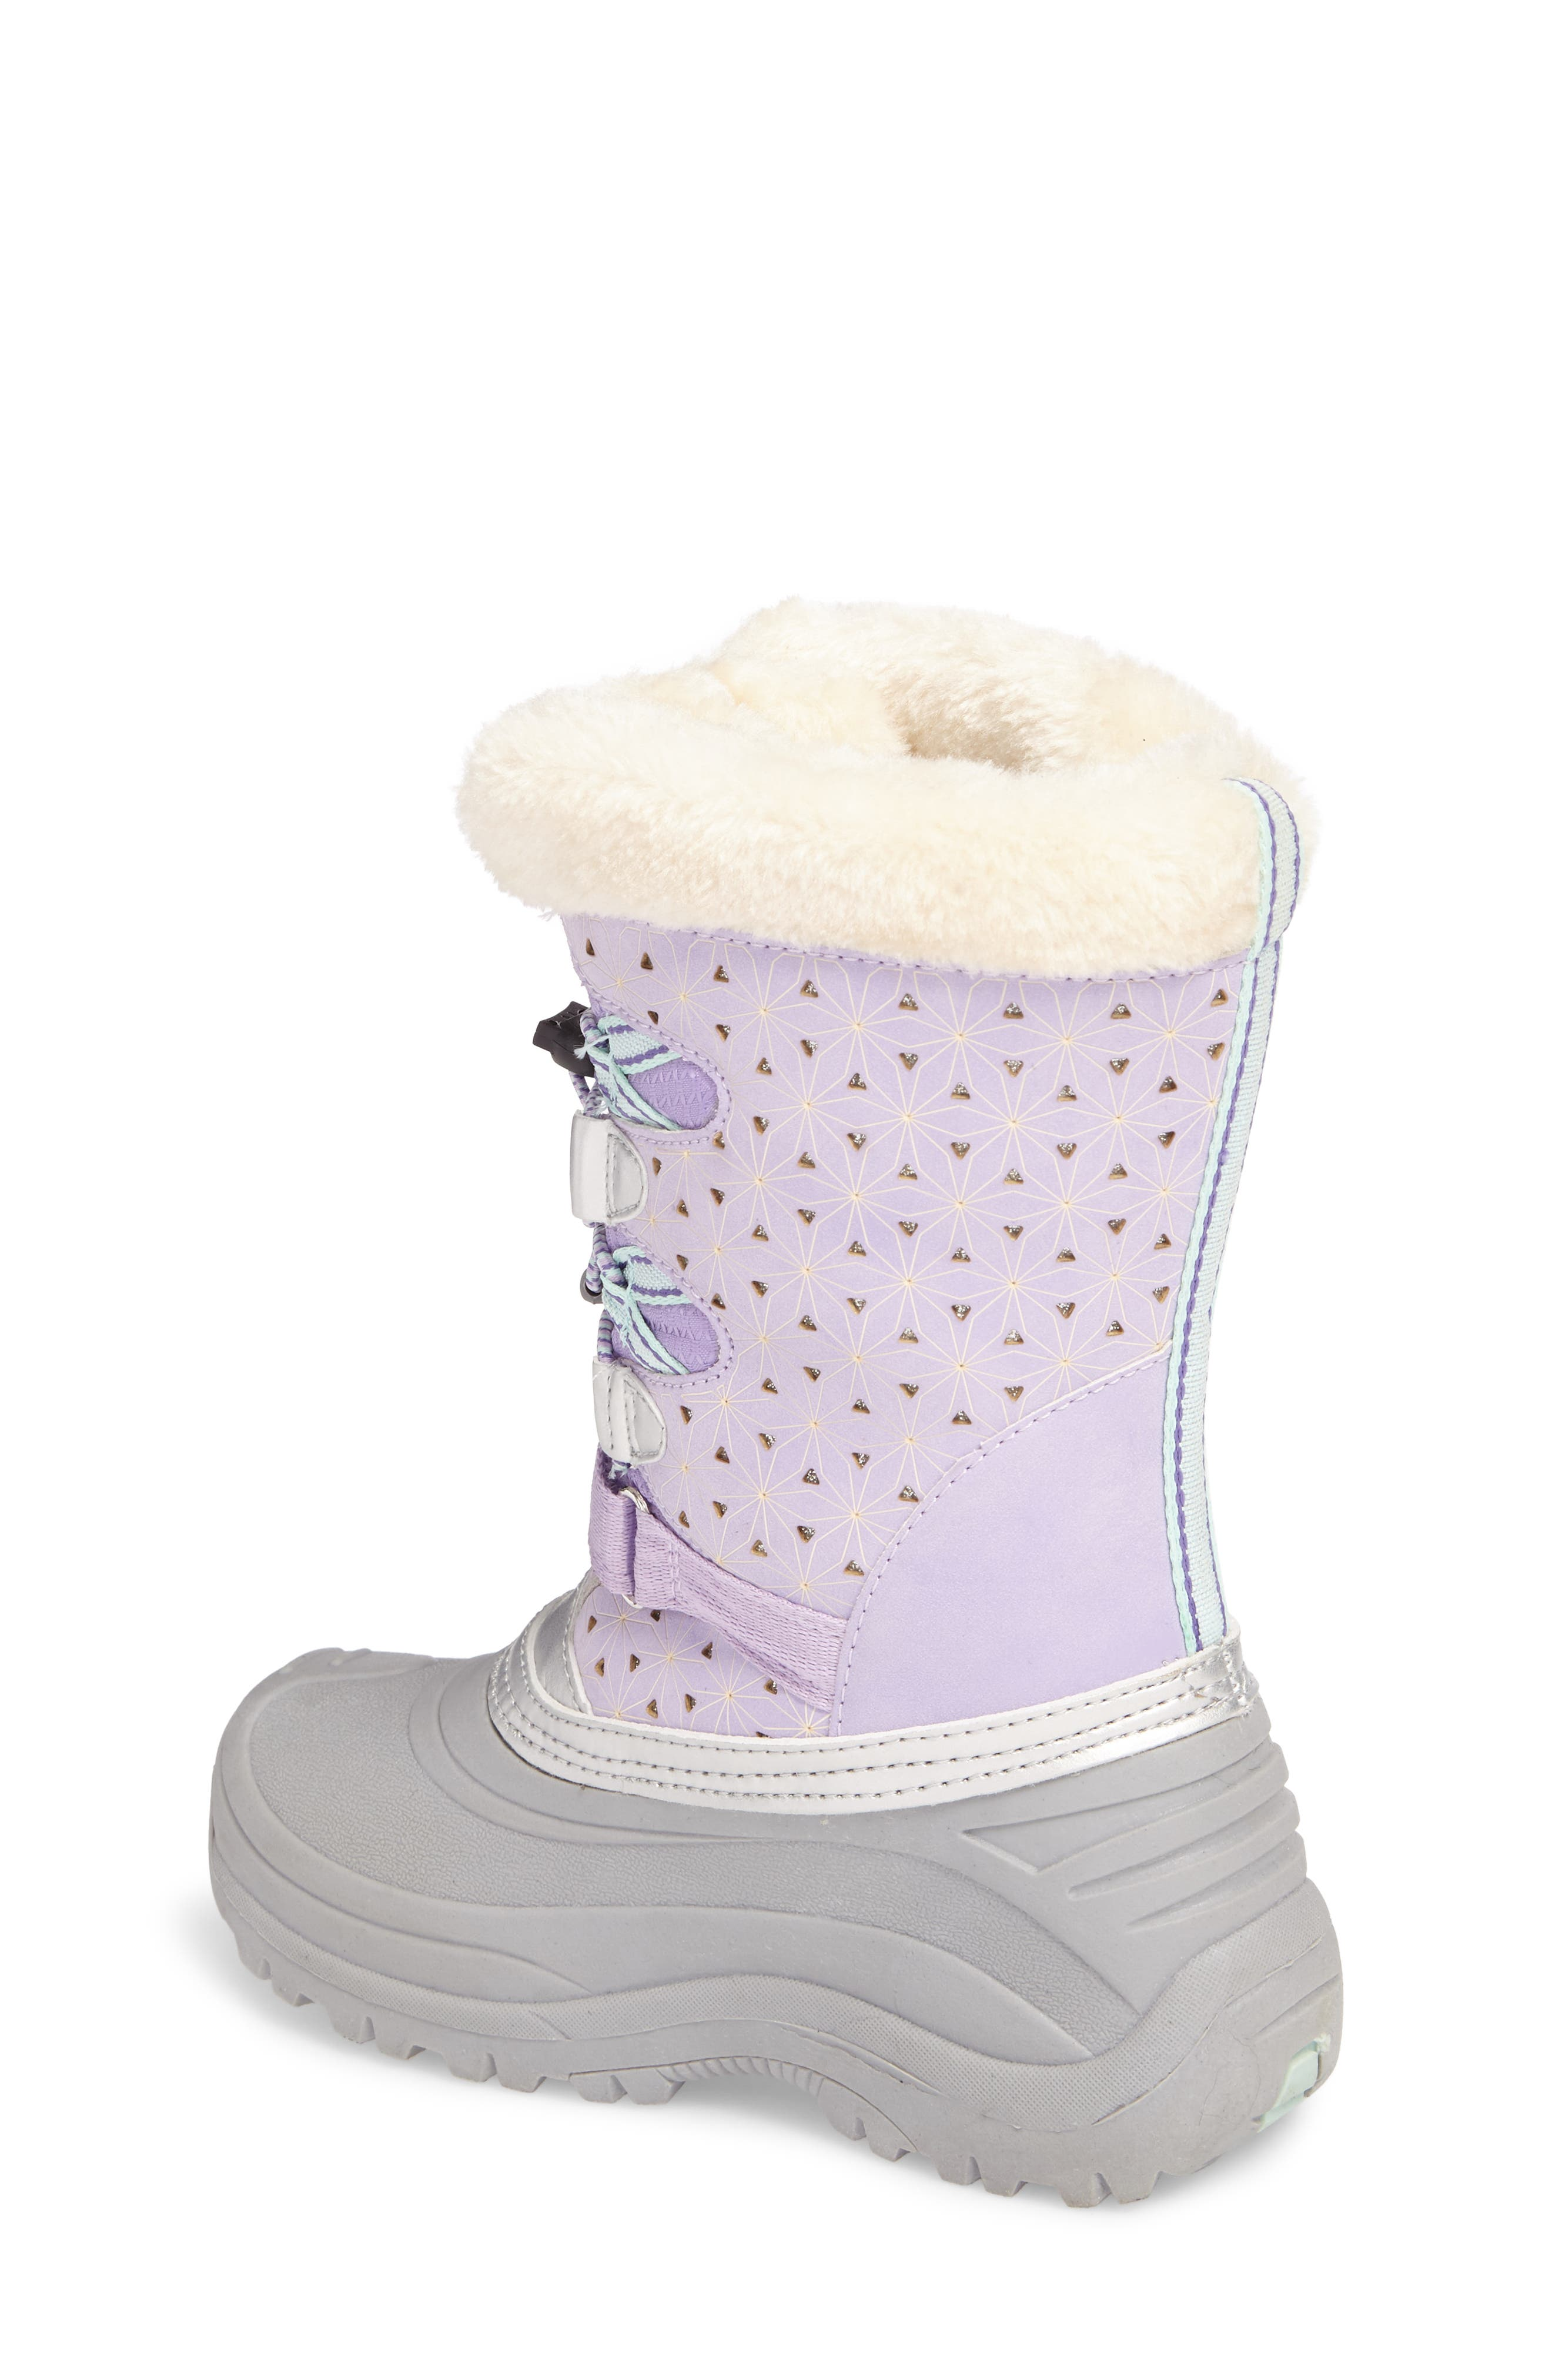 'Venom' Waterproof Insulated Snow Boot,                             Alternate thumbnail 4, color,